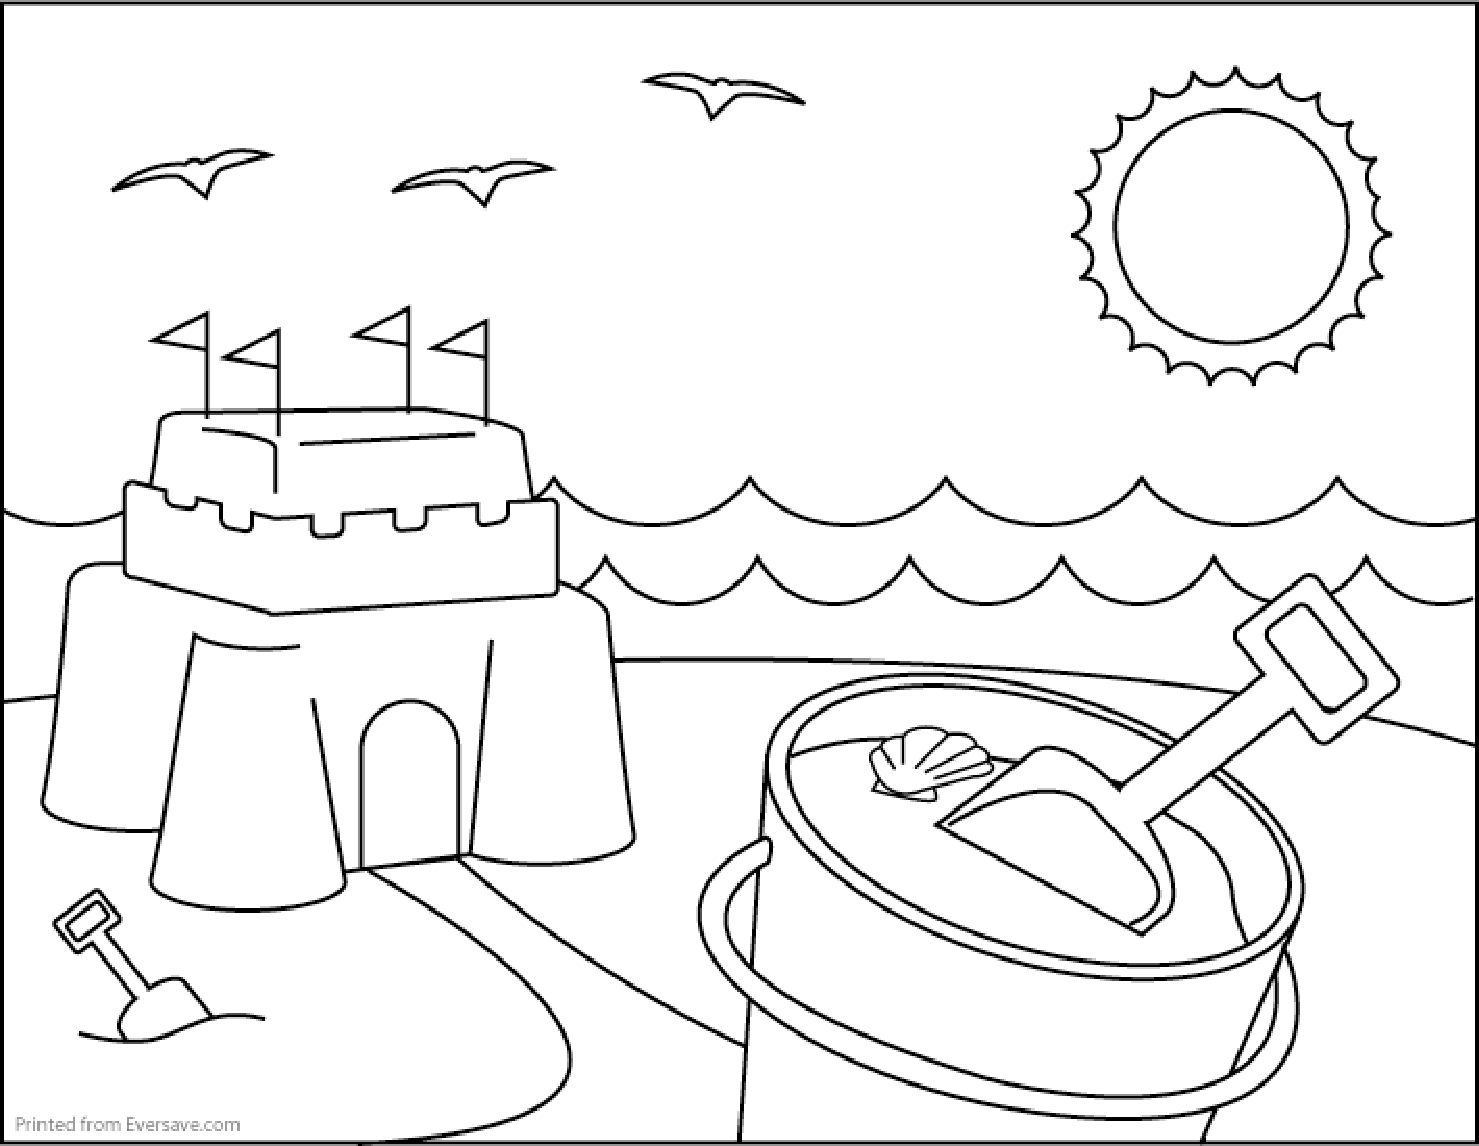 summer coloring pages for older kids - Free Large Images | School ...